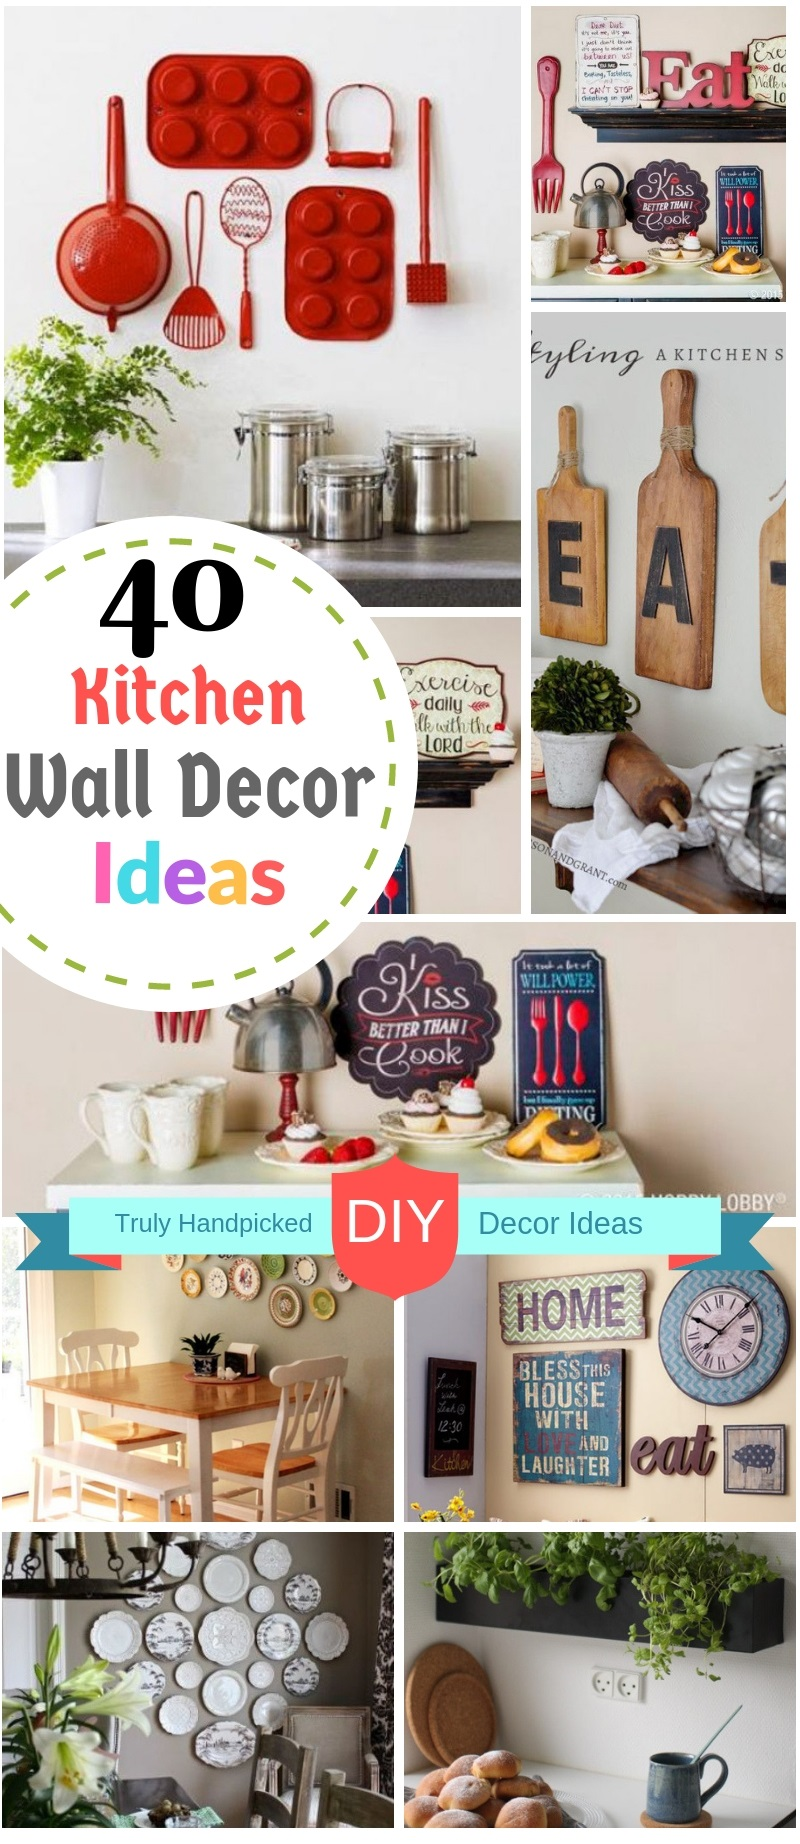 40 Diy Kitchen Wall Decor Ideas